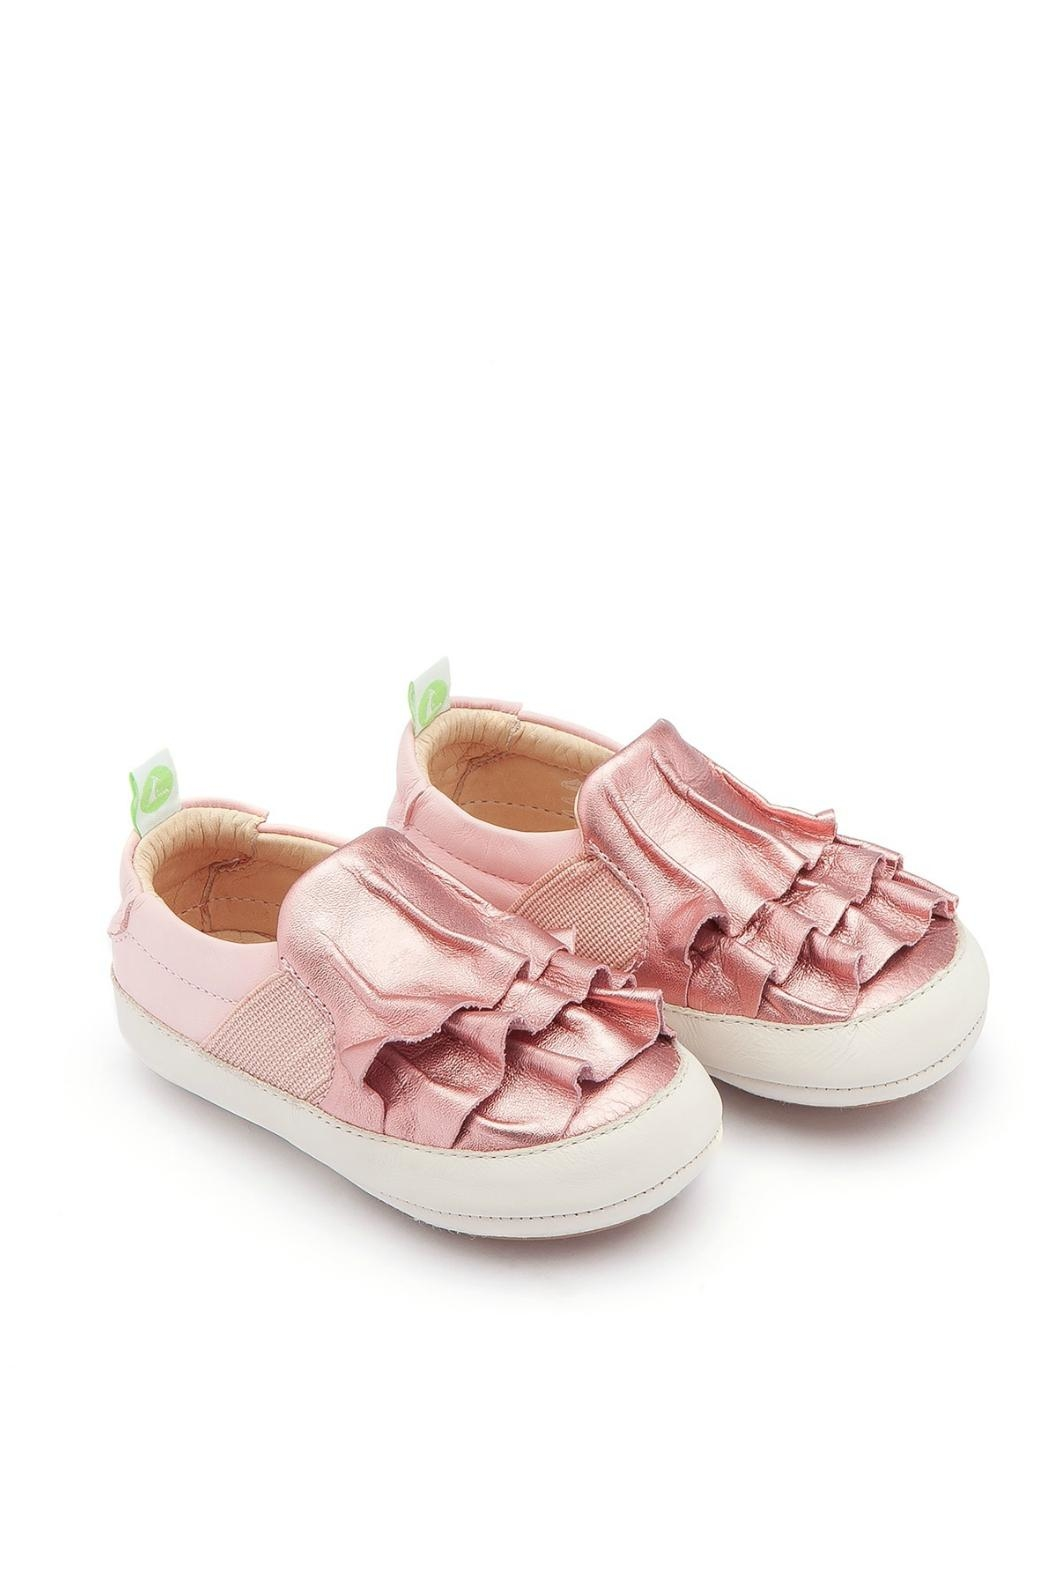 Tip Toey Joey Flamenky Pink Shoes - Main Image